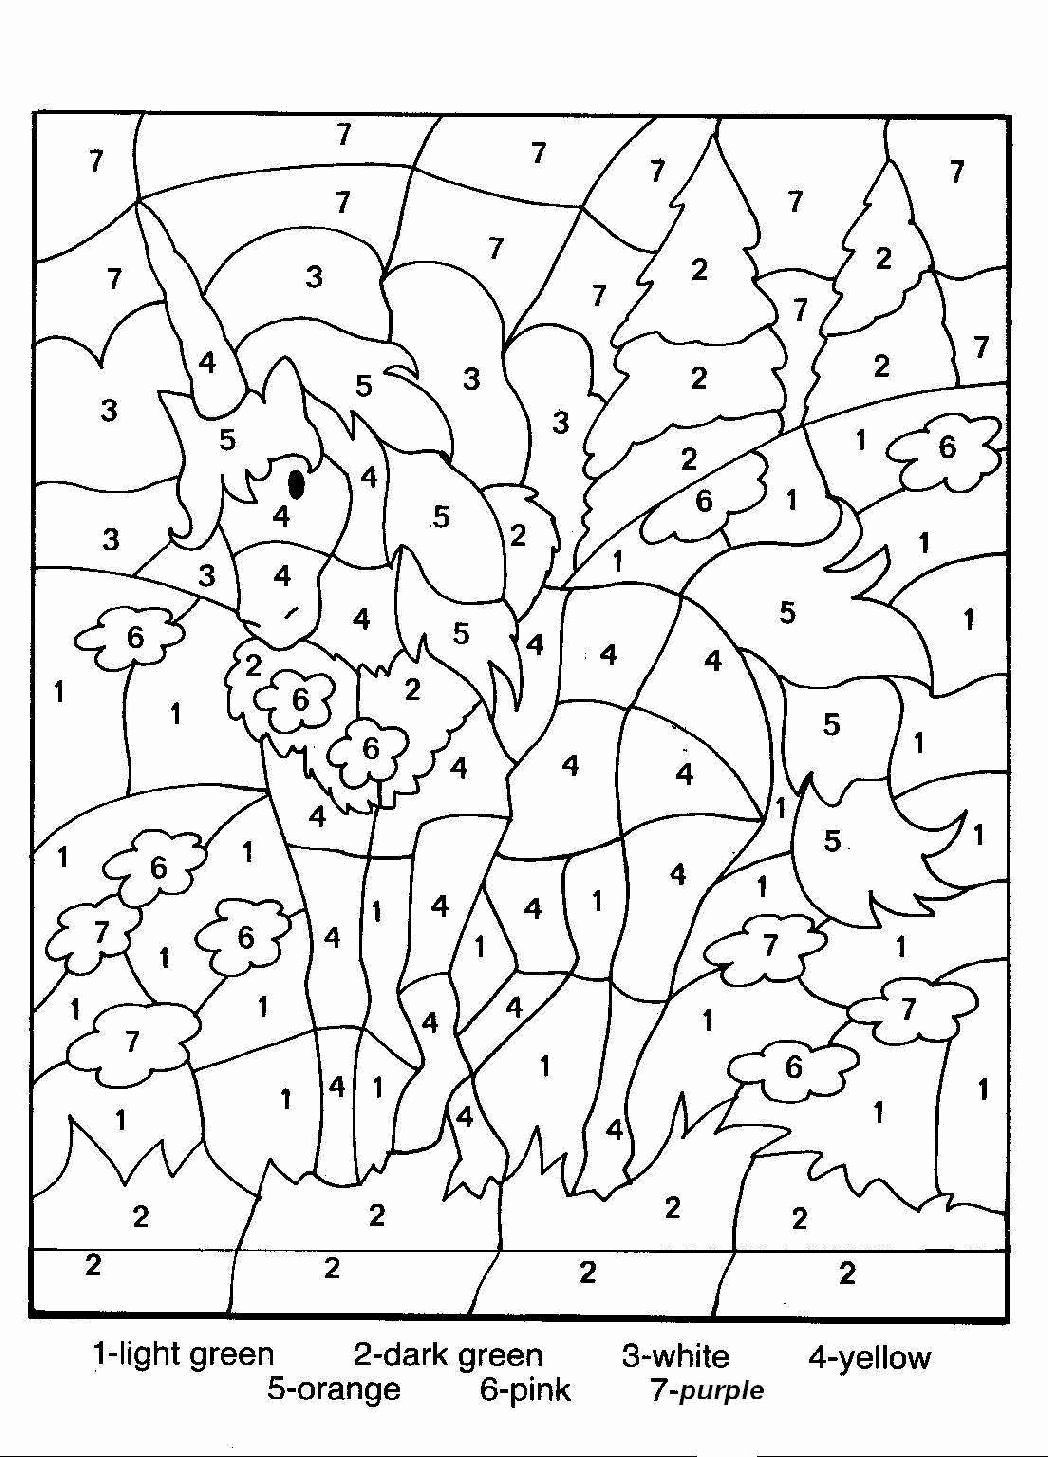 Thanksgiving Math Coloring Pages Lovely 5th Grade Math Coloring Pages  Lovely Division…   Unicorn coloring pages [ 1457 x 1048 Pixel ]